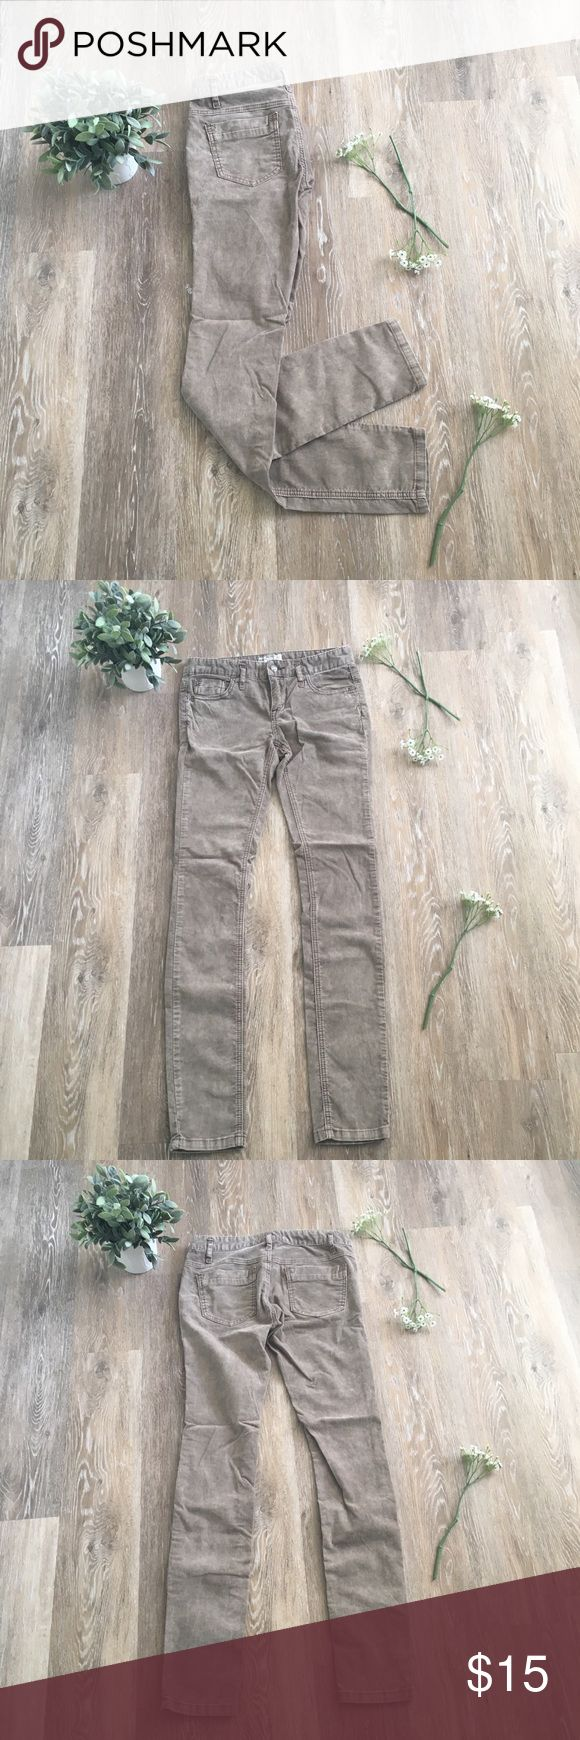 Free People Jeans Corduroy jeans from Free People are a fun addition to any fall or winter wardrobe 🍂 Free People Jeans Skinny